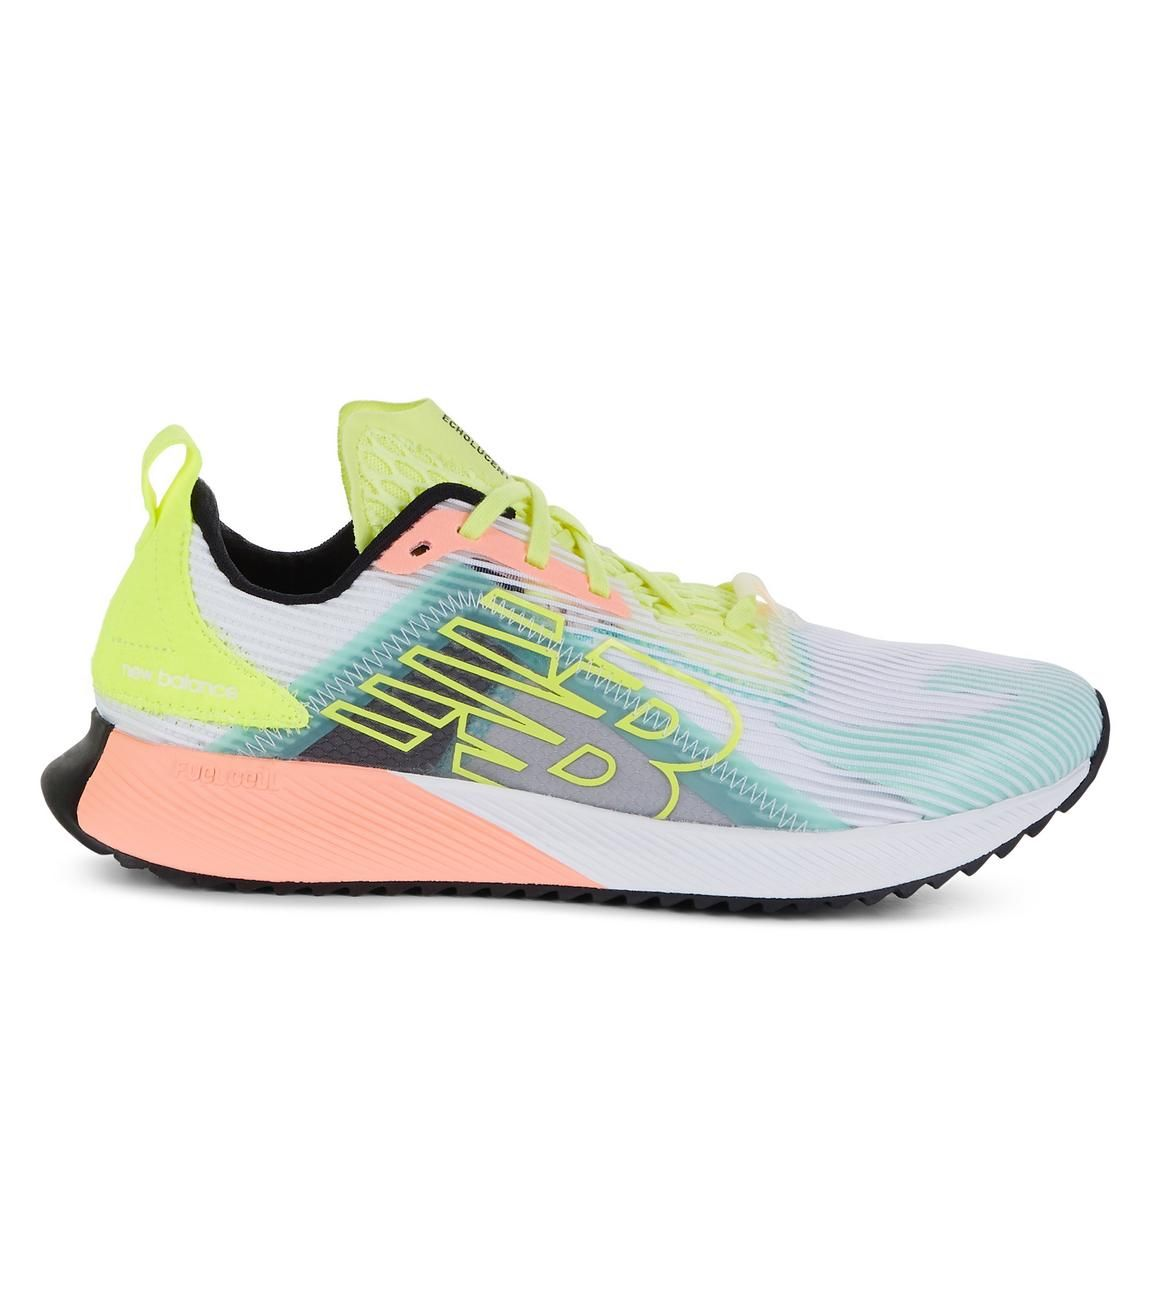 New Balance Fuelcell Workout Trainers